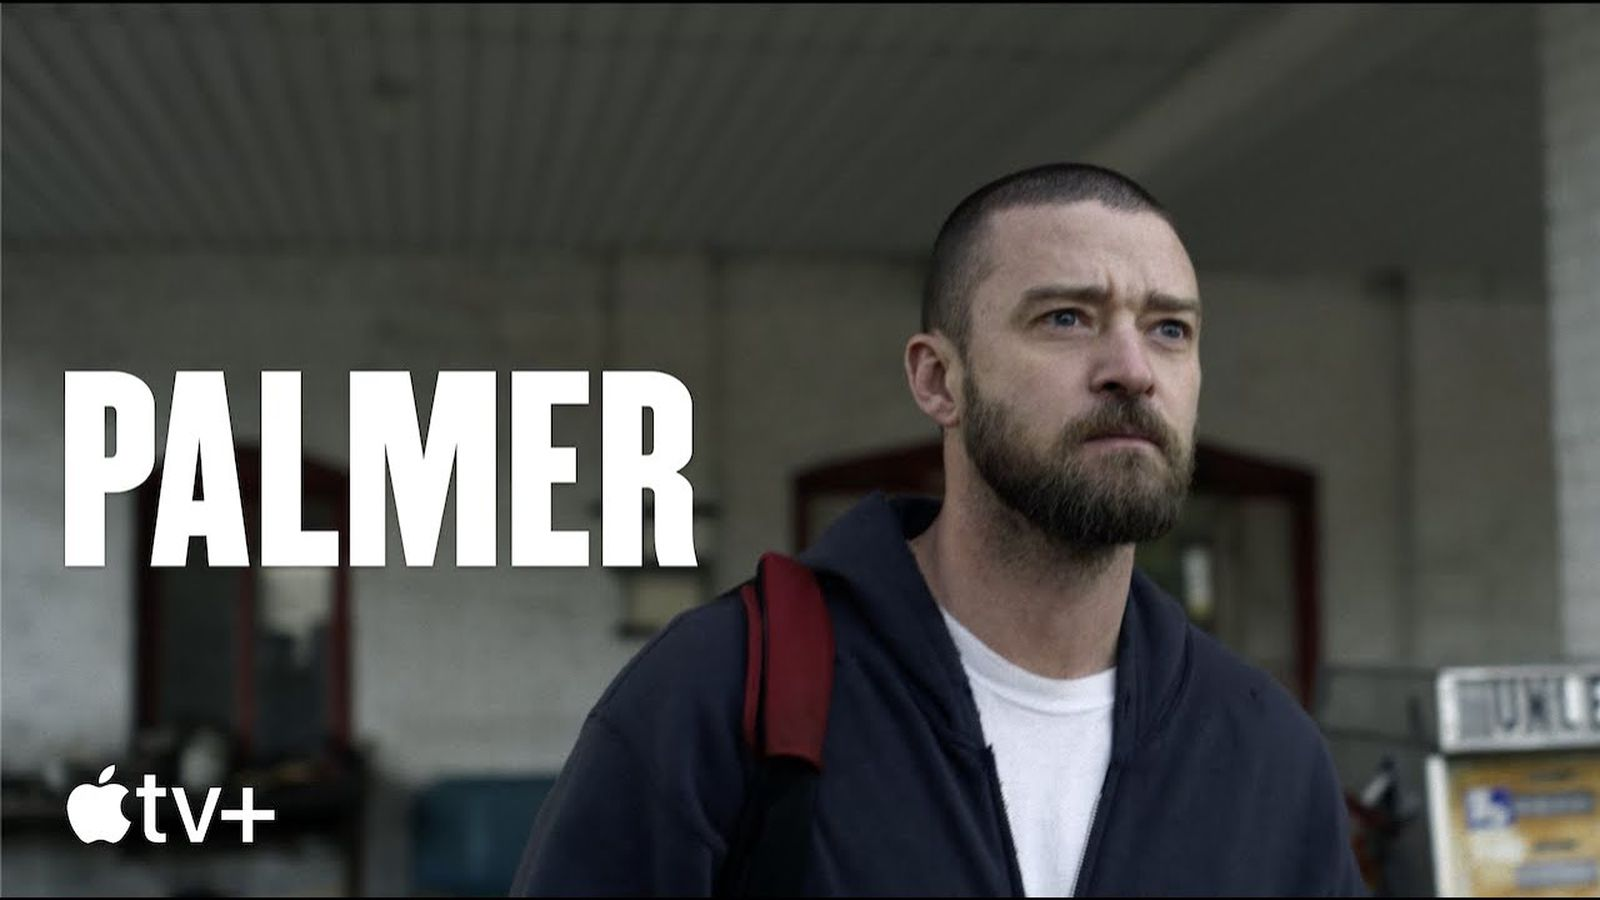 Justin Timberlake's Palmer release date confirmed